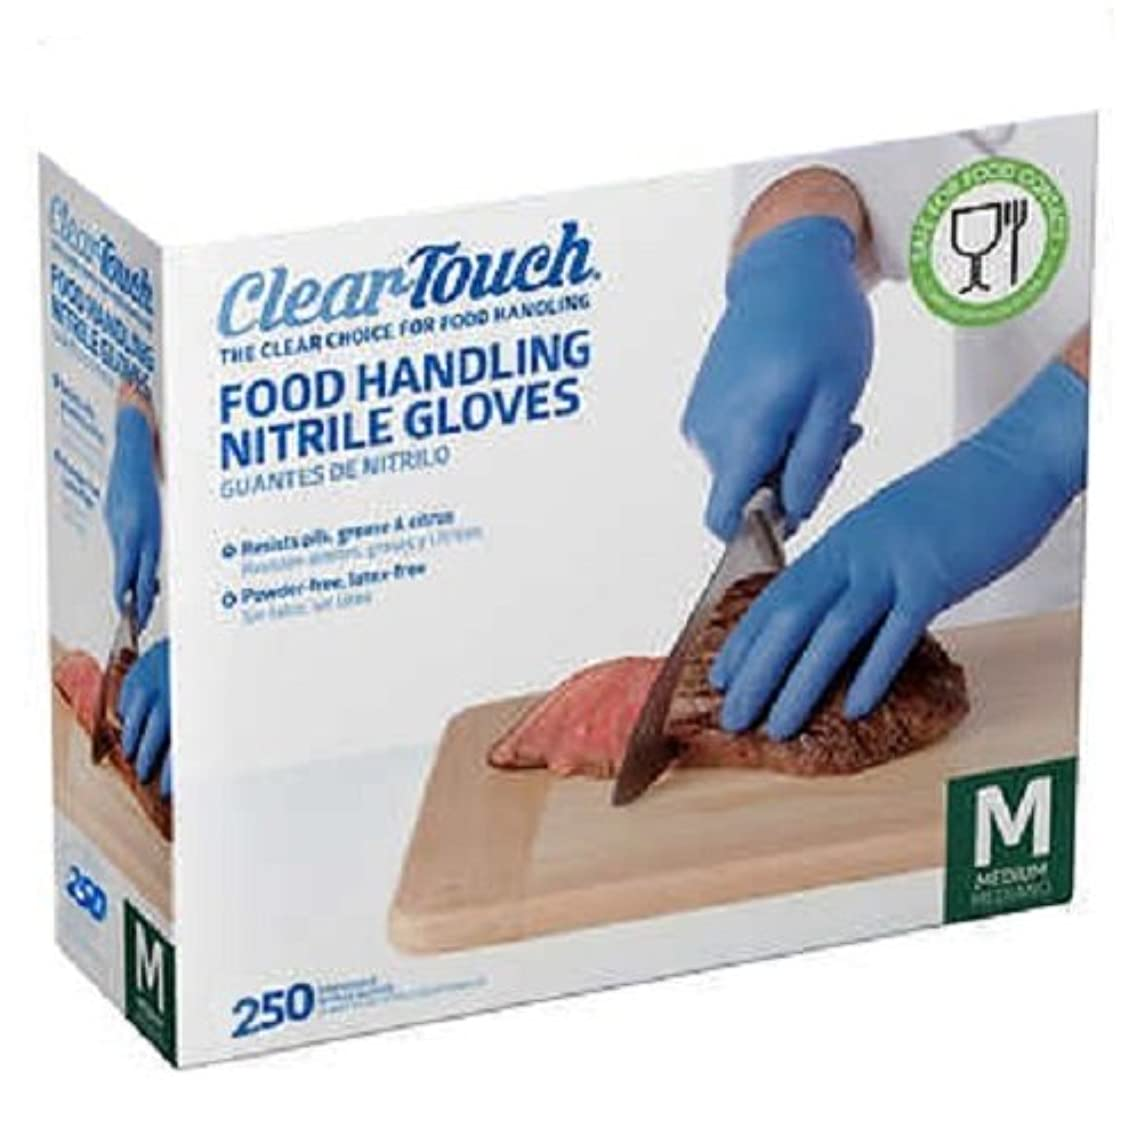 Food Handling Nitrile Gloves Powder Free. Latex Free, Food Handing Gloves for Cooking,Cleaning,Food Handling Disposable Gloves,Resists Oils, Grease - Complies with FDA 21 CFR 177 (250, Medium)